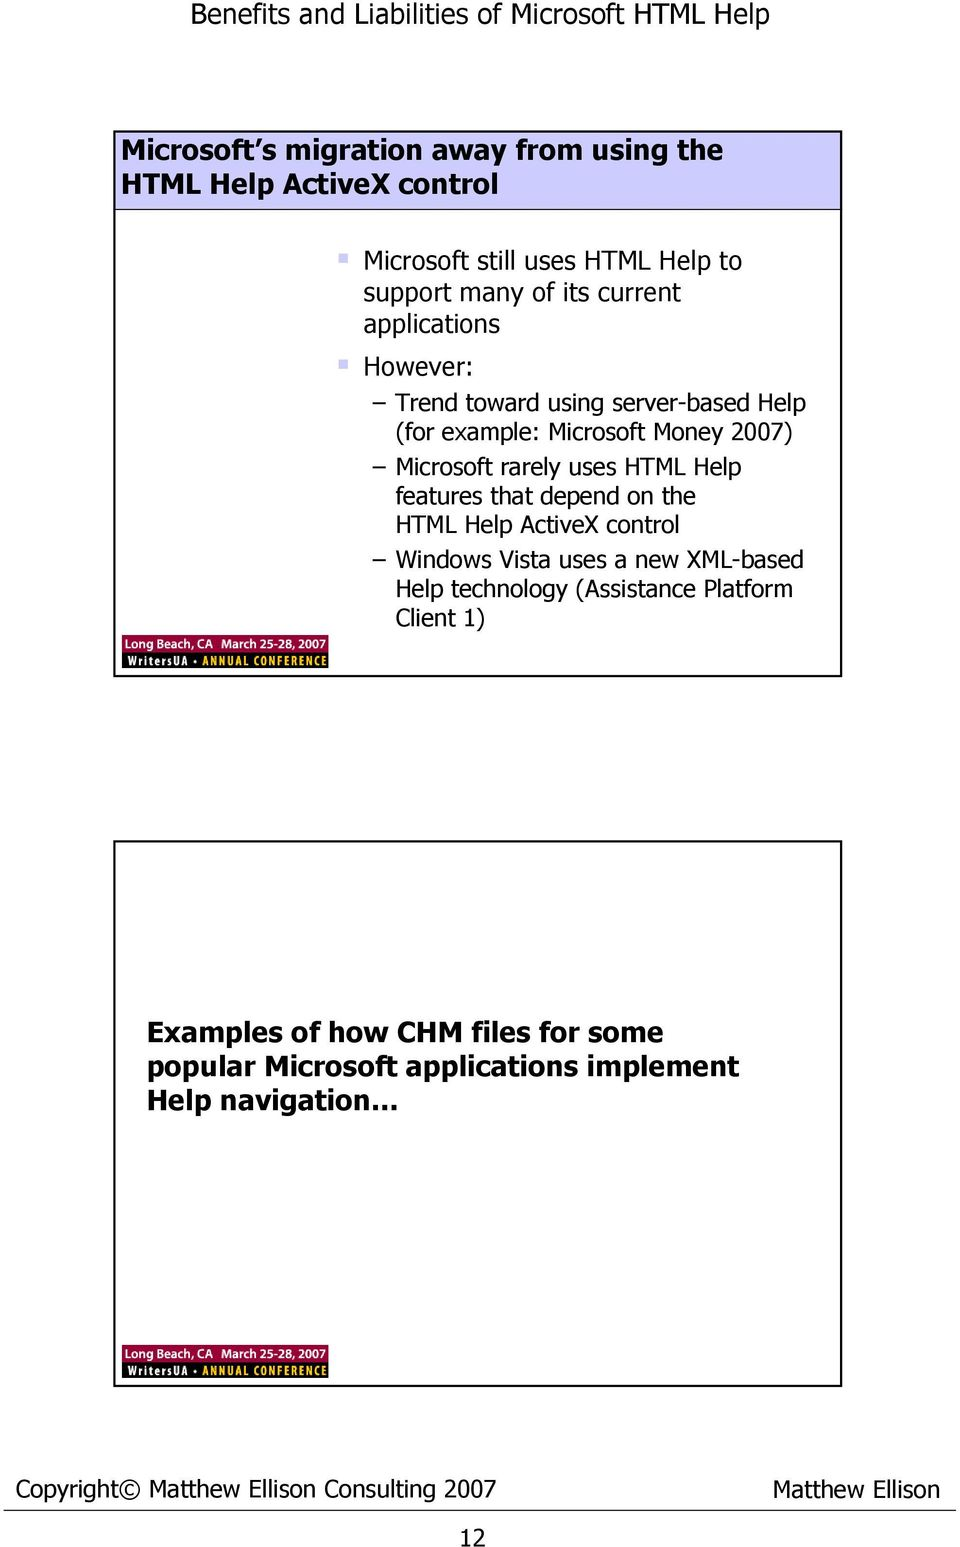 Benefits and Liabilities of Microsoft HTML Help - PDF